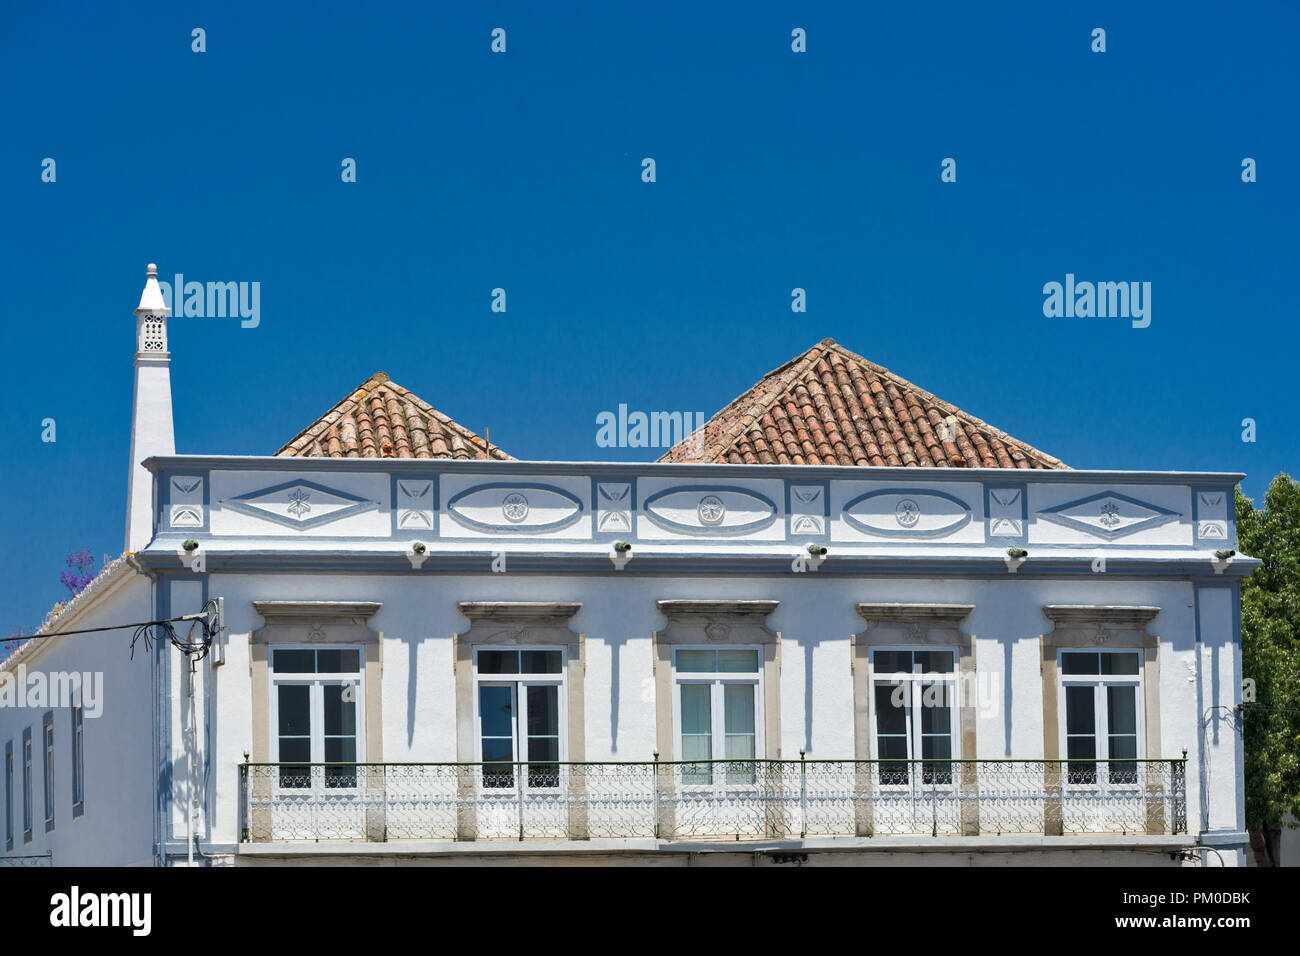 Tavira, Algarve, Portugal, the roofs with four slopes show a strong oriental influence by their architecture - Stock Image